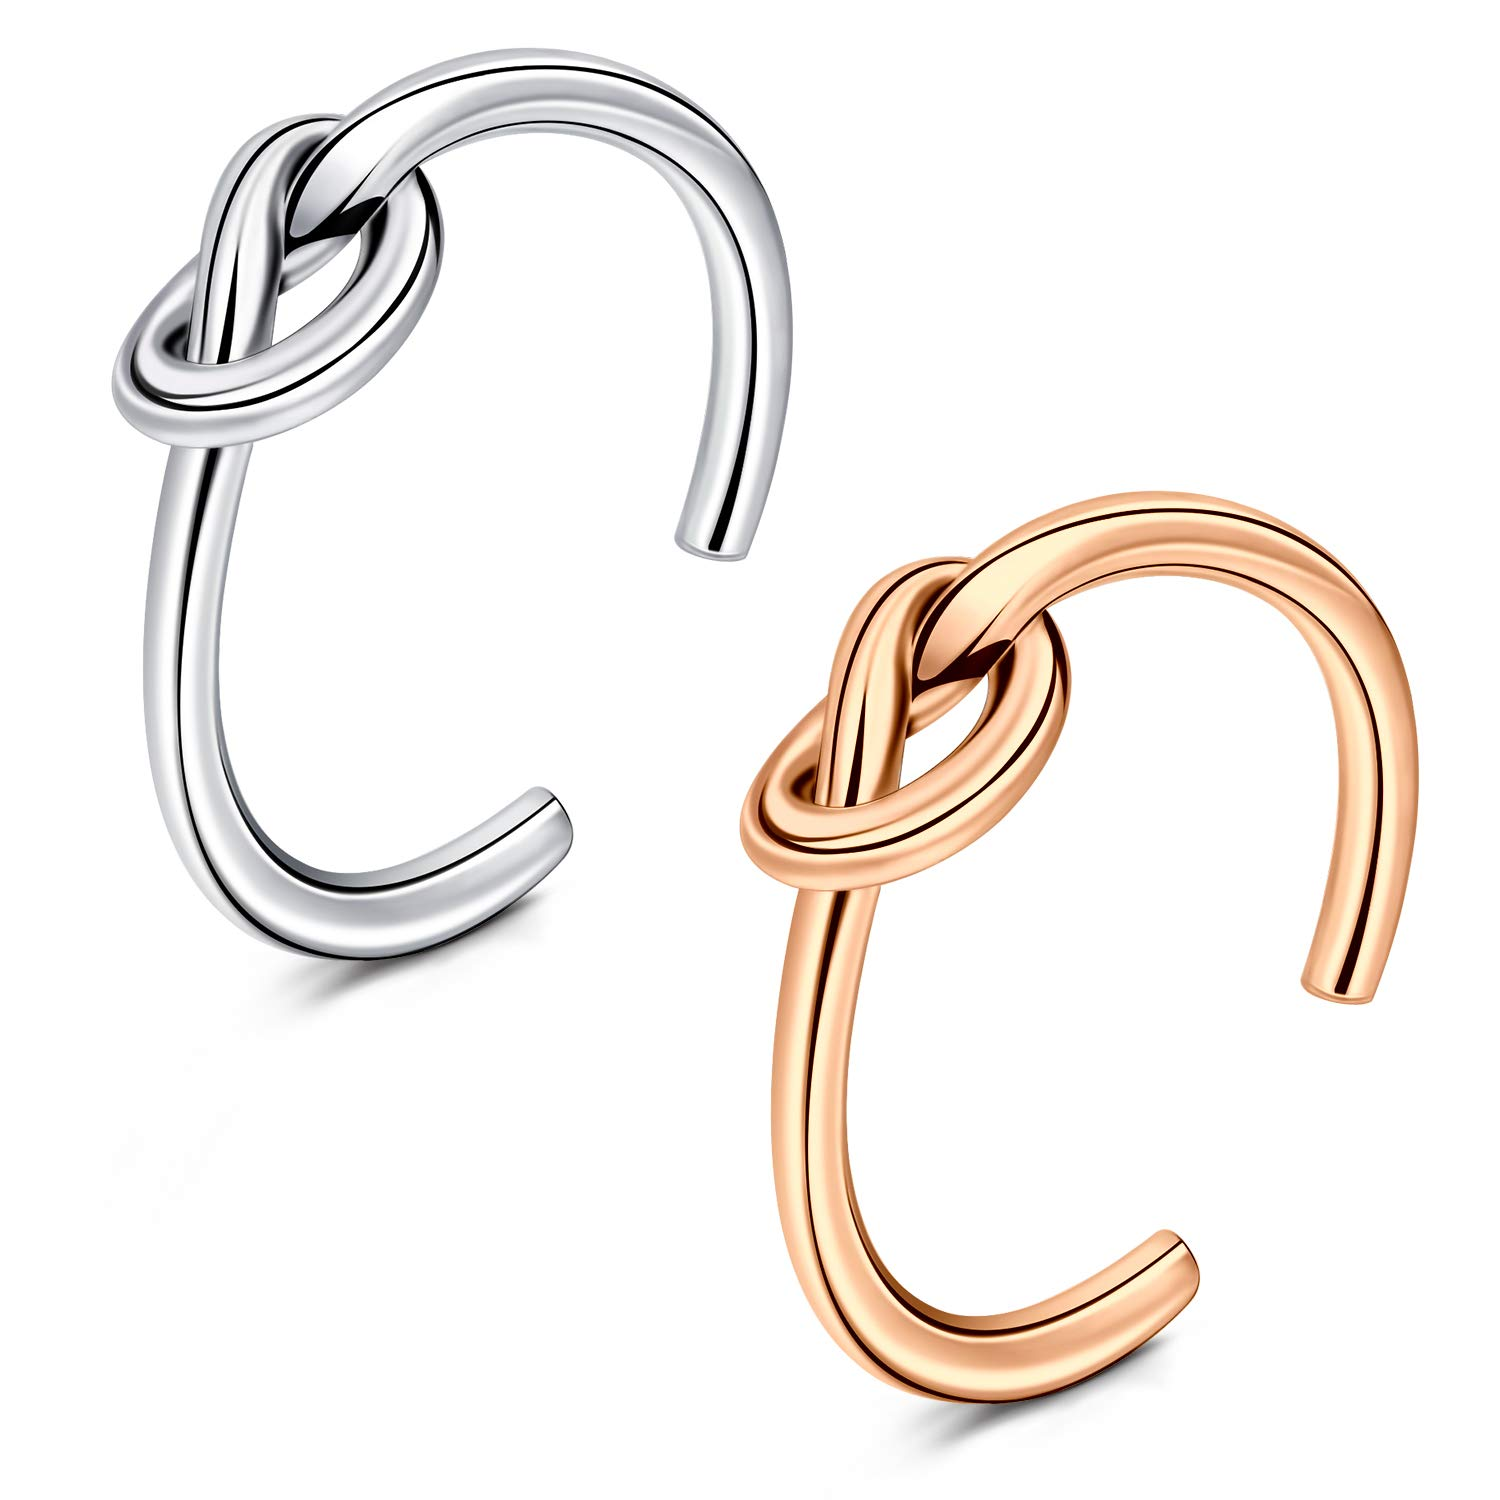 QWALIT Toe Rings for Women Girls Flower Knot Simple Open Adjustable Fingers Joint Knuckle Tail Ring Foot Jewelry Silver Rose Gold